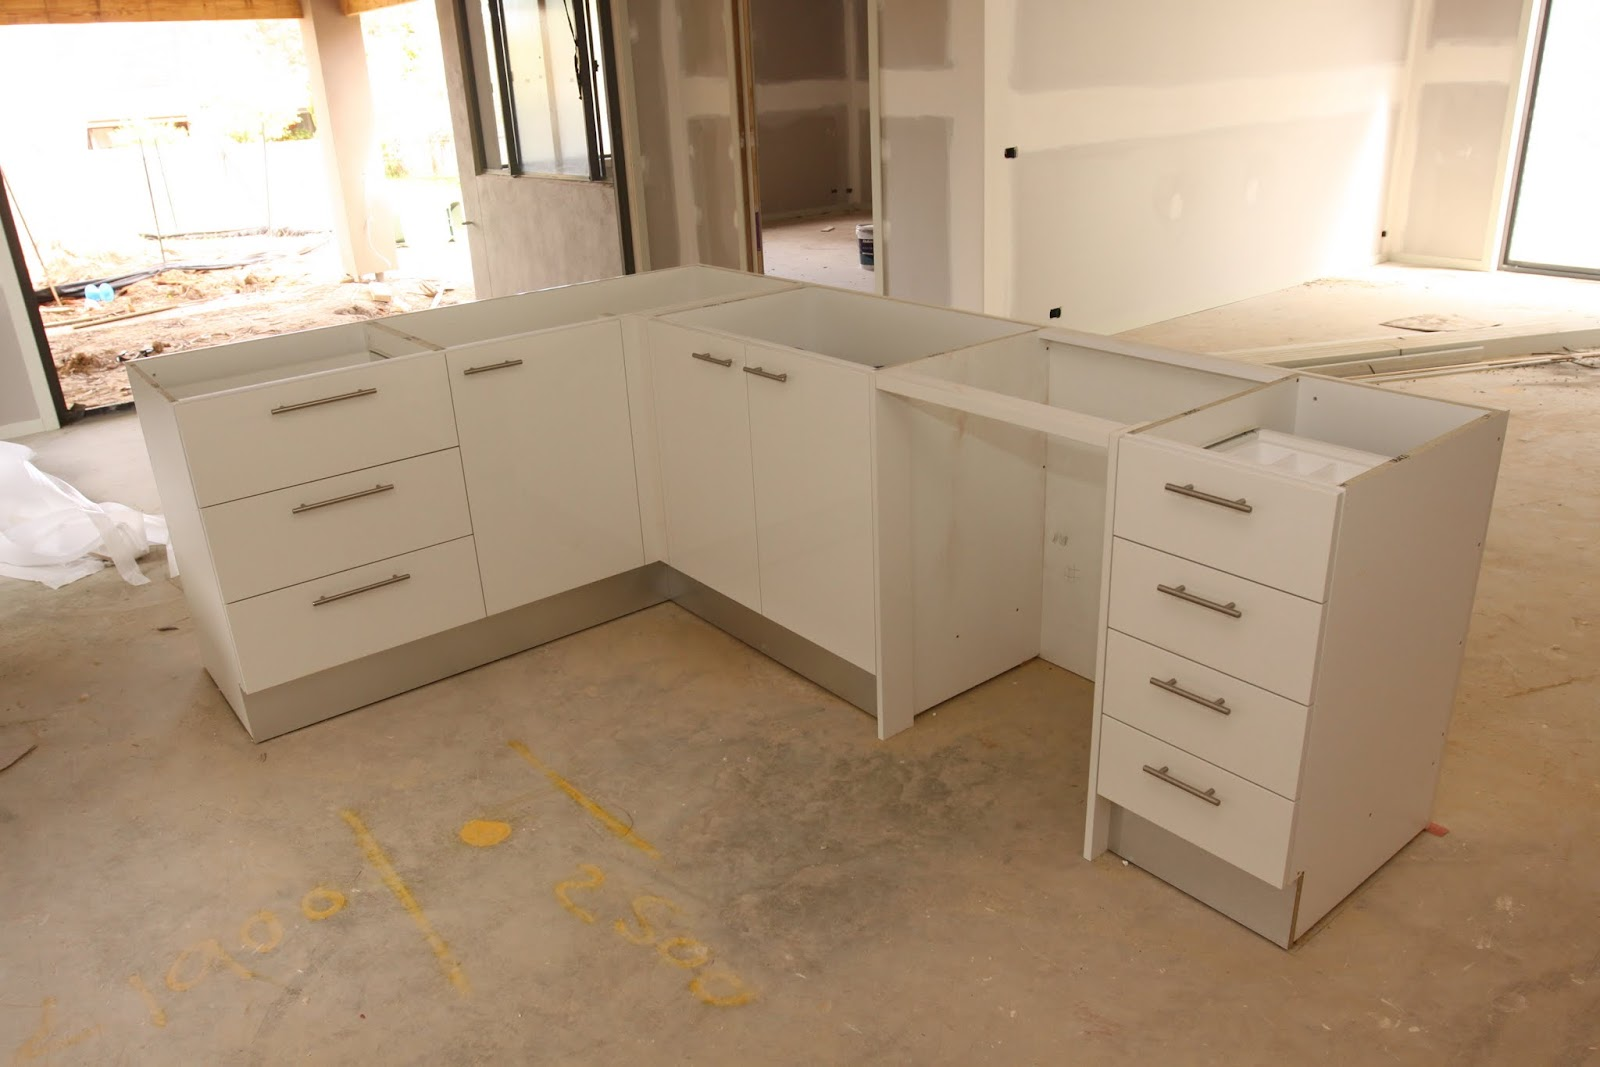 Our metricon nolan 41 journey kitchen and vanity cabinetry - L Shaped Island Bench Which Will Have Water Fall Edges